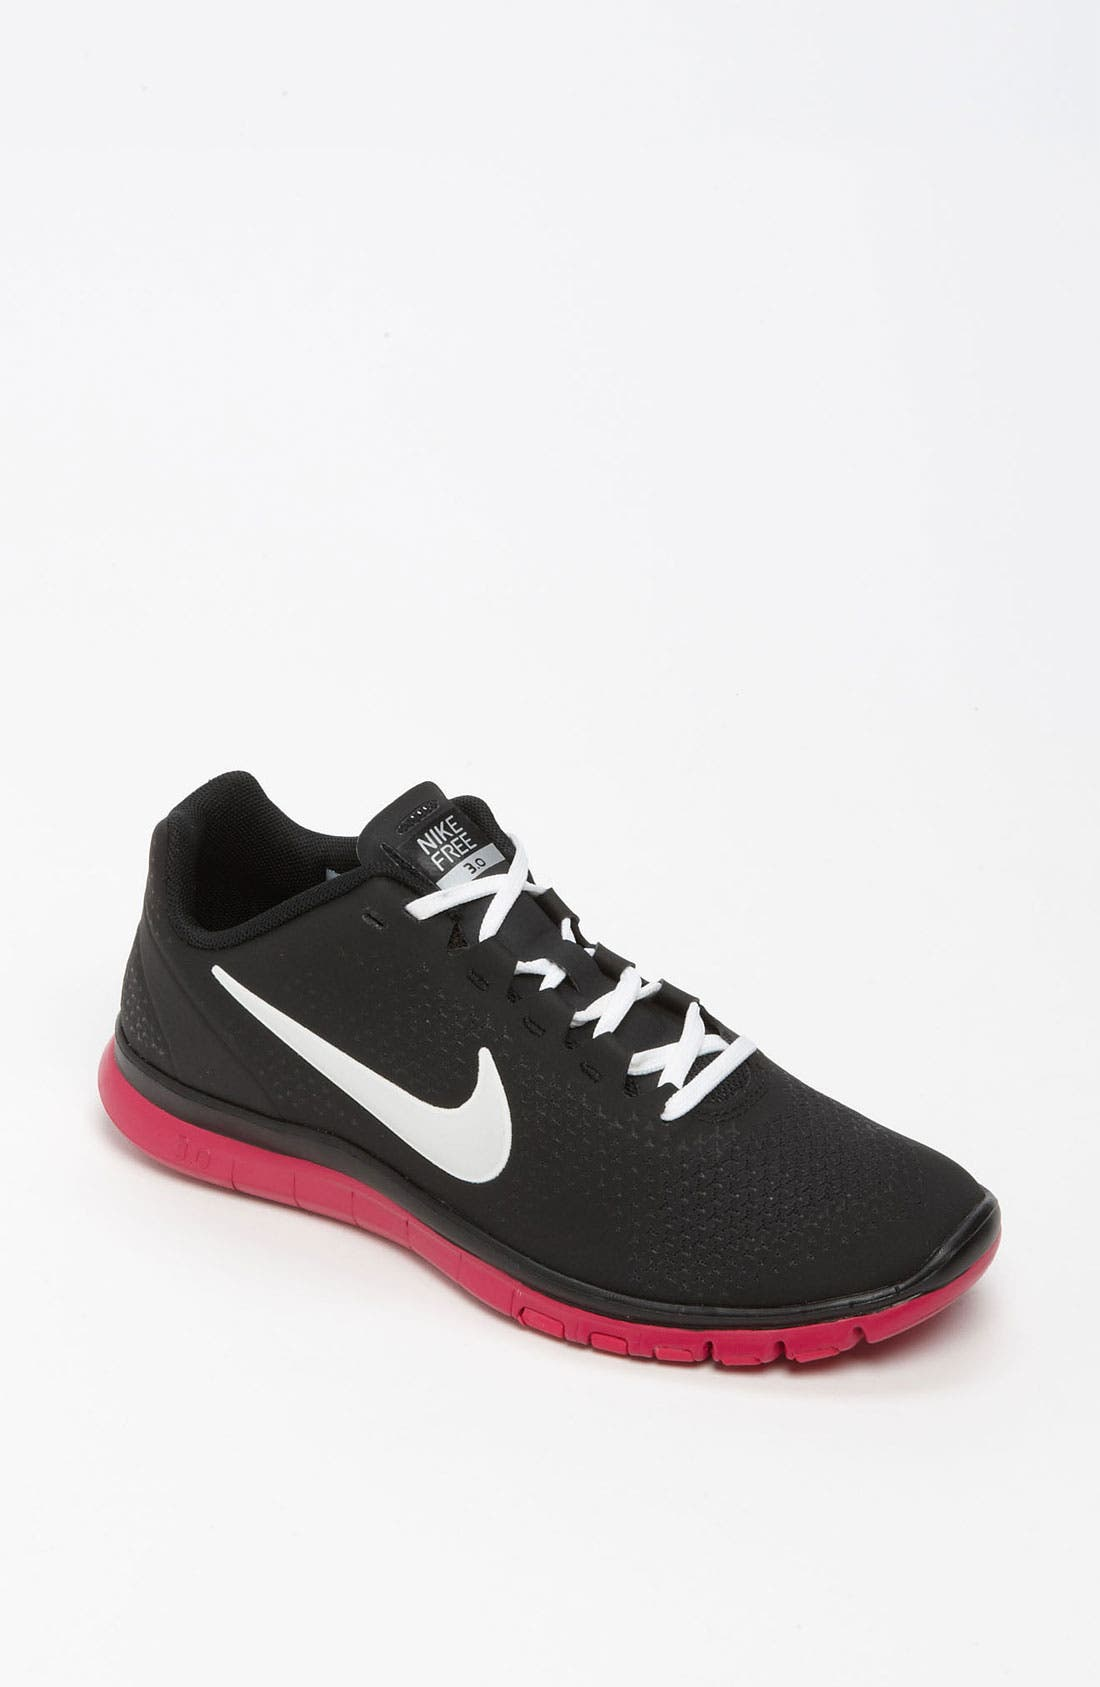 Main Image - Nike 'Free Advantage' Training Shoe (Women)